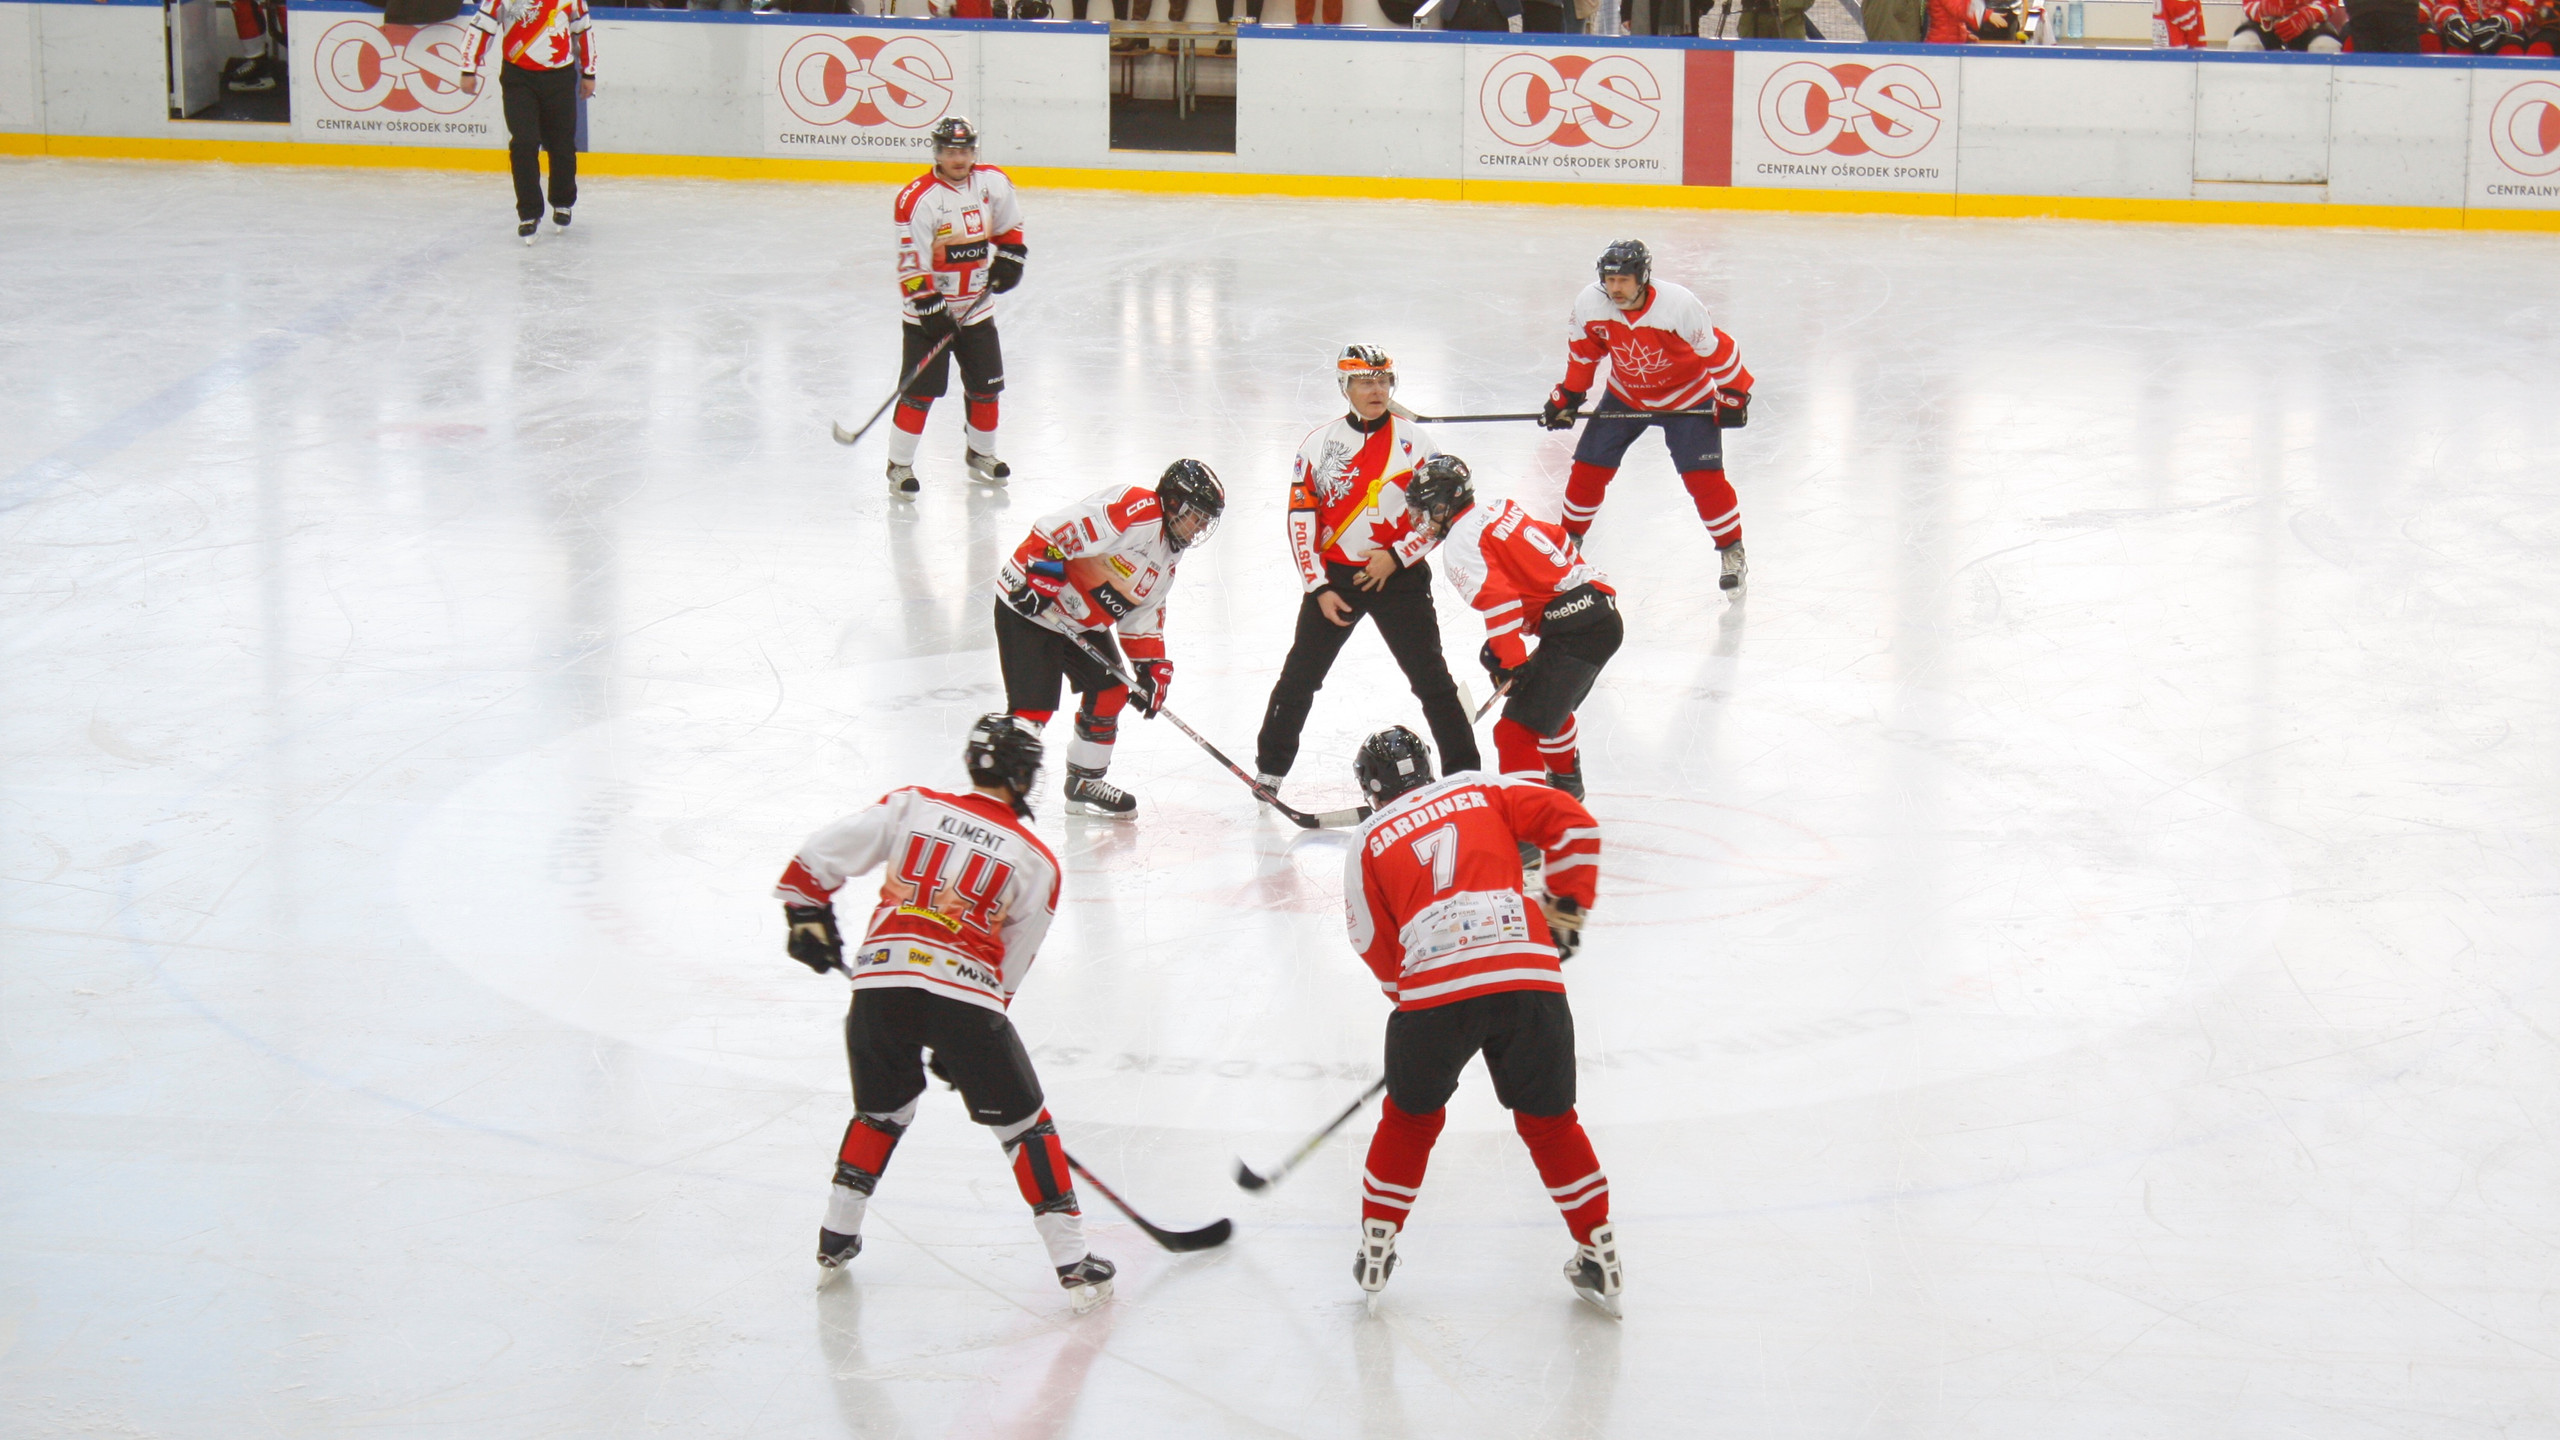 Hockey Match for Charity